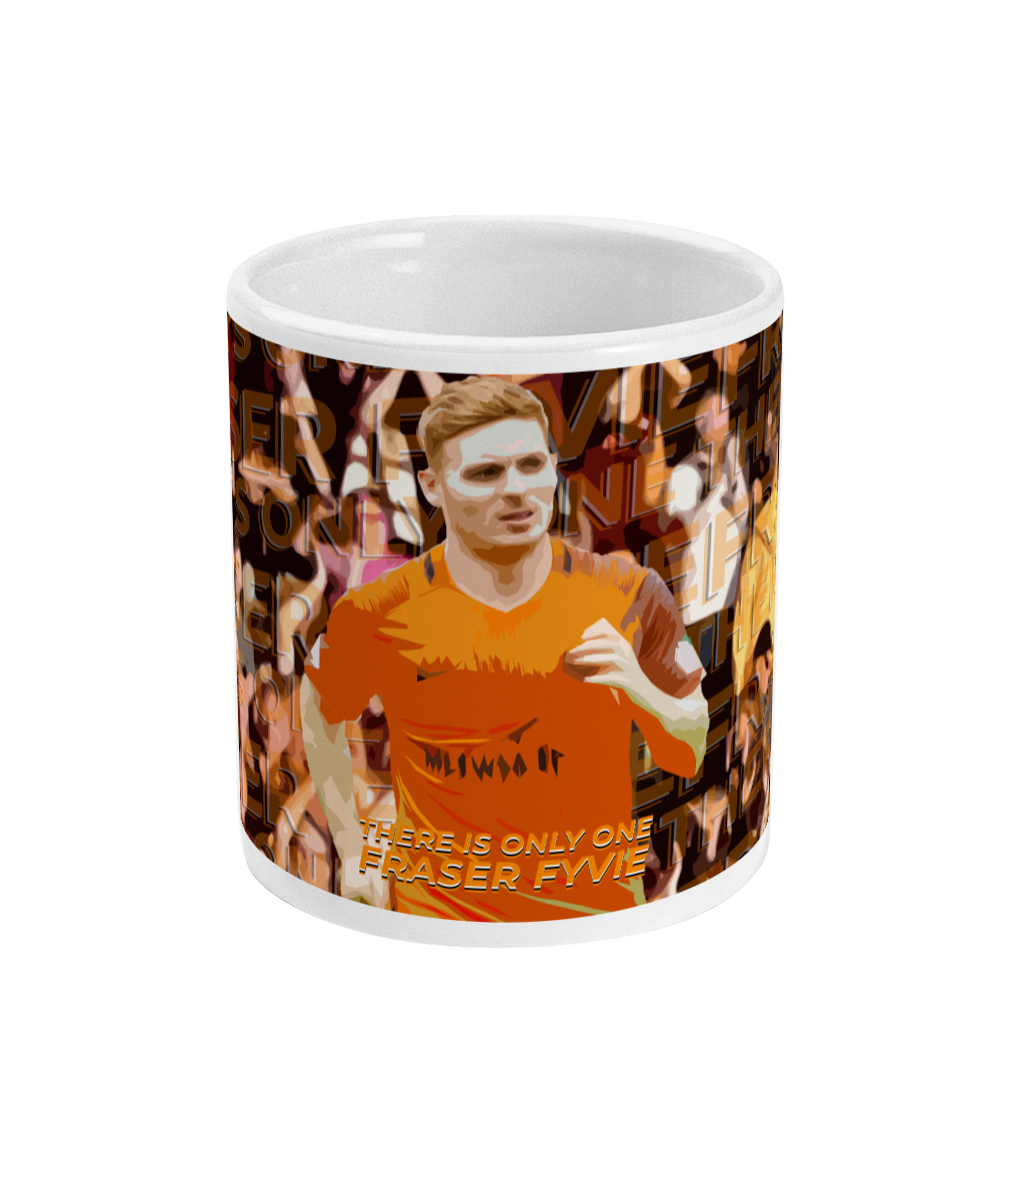 THERE IS ONLY ONE FRASER FYVIE! 11oz Mug